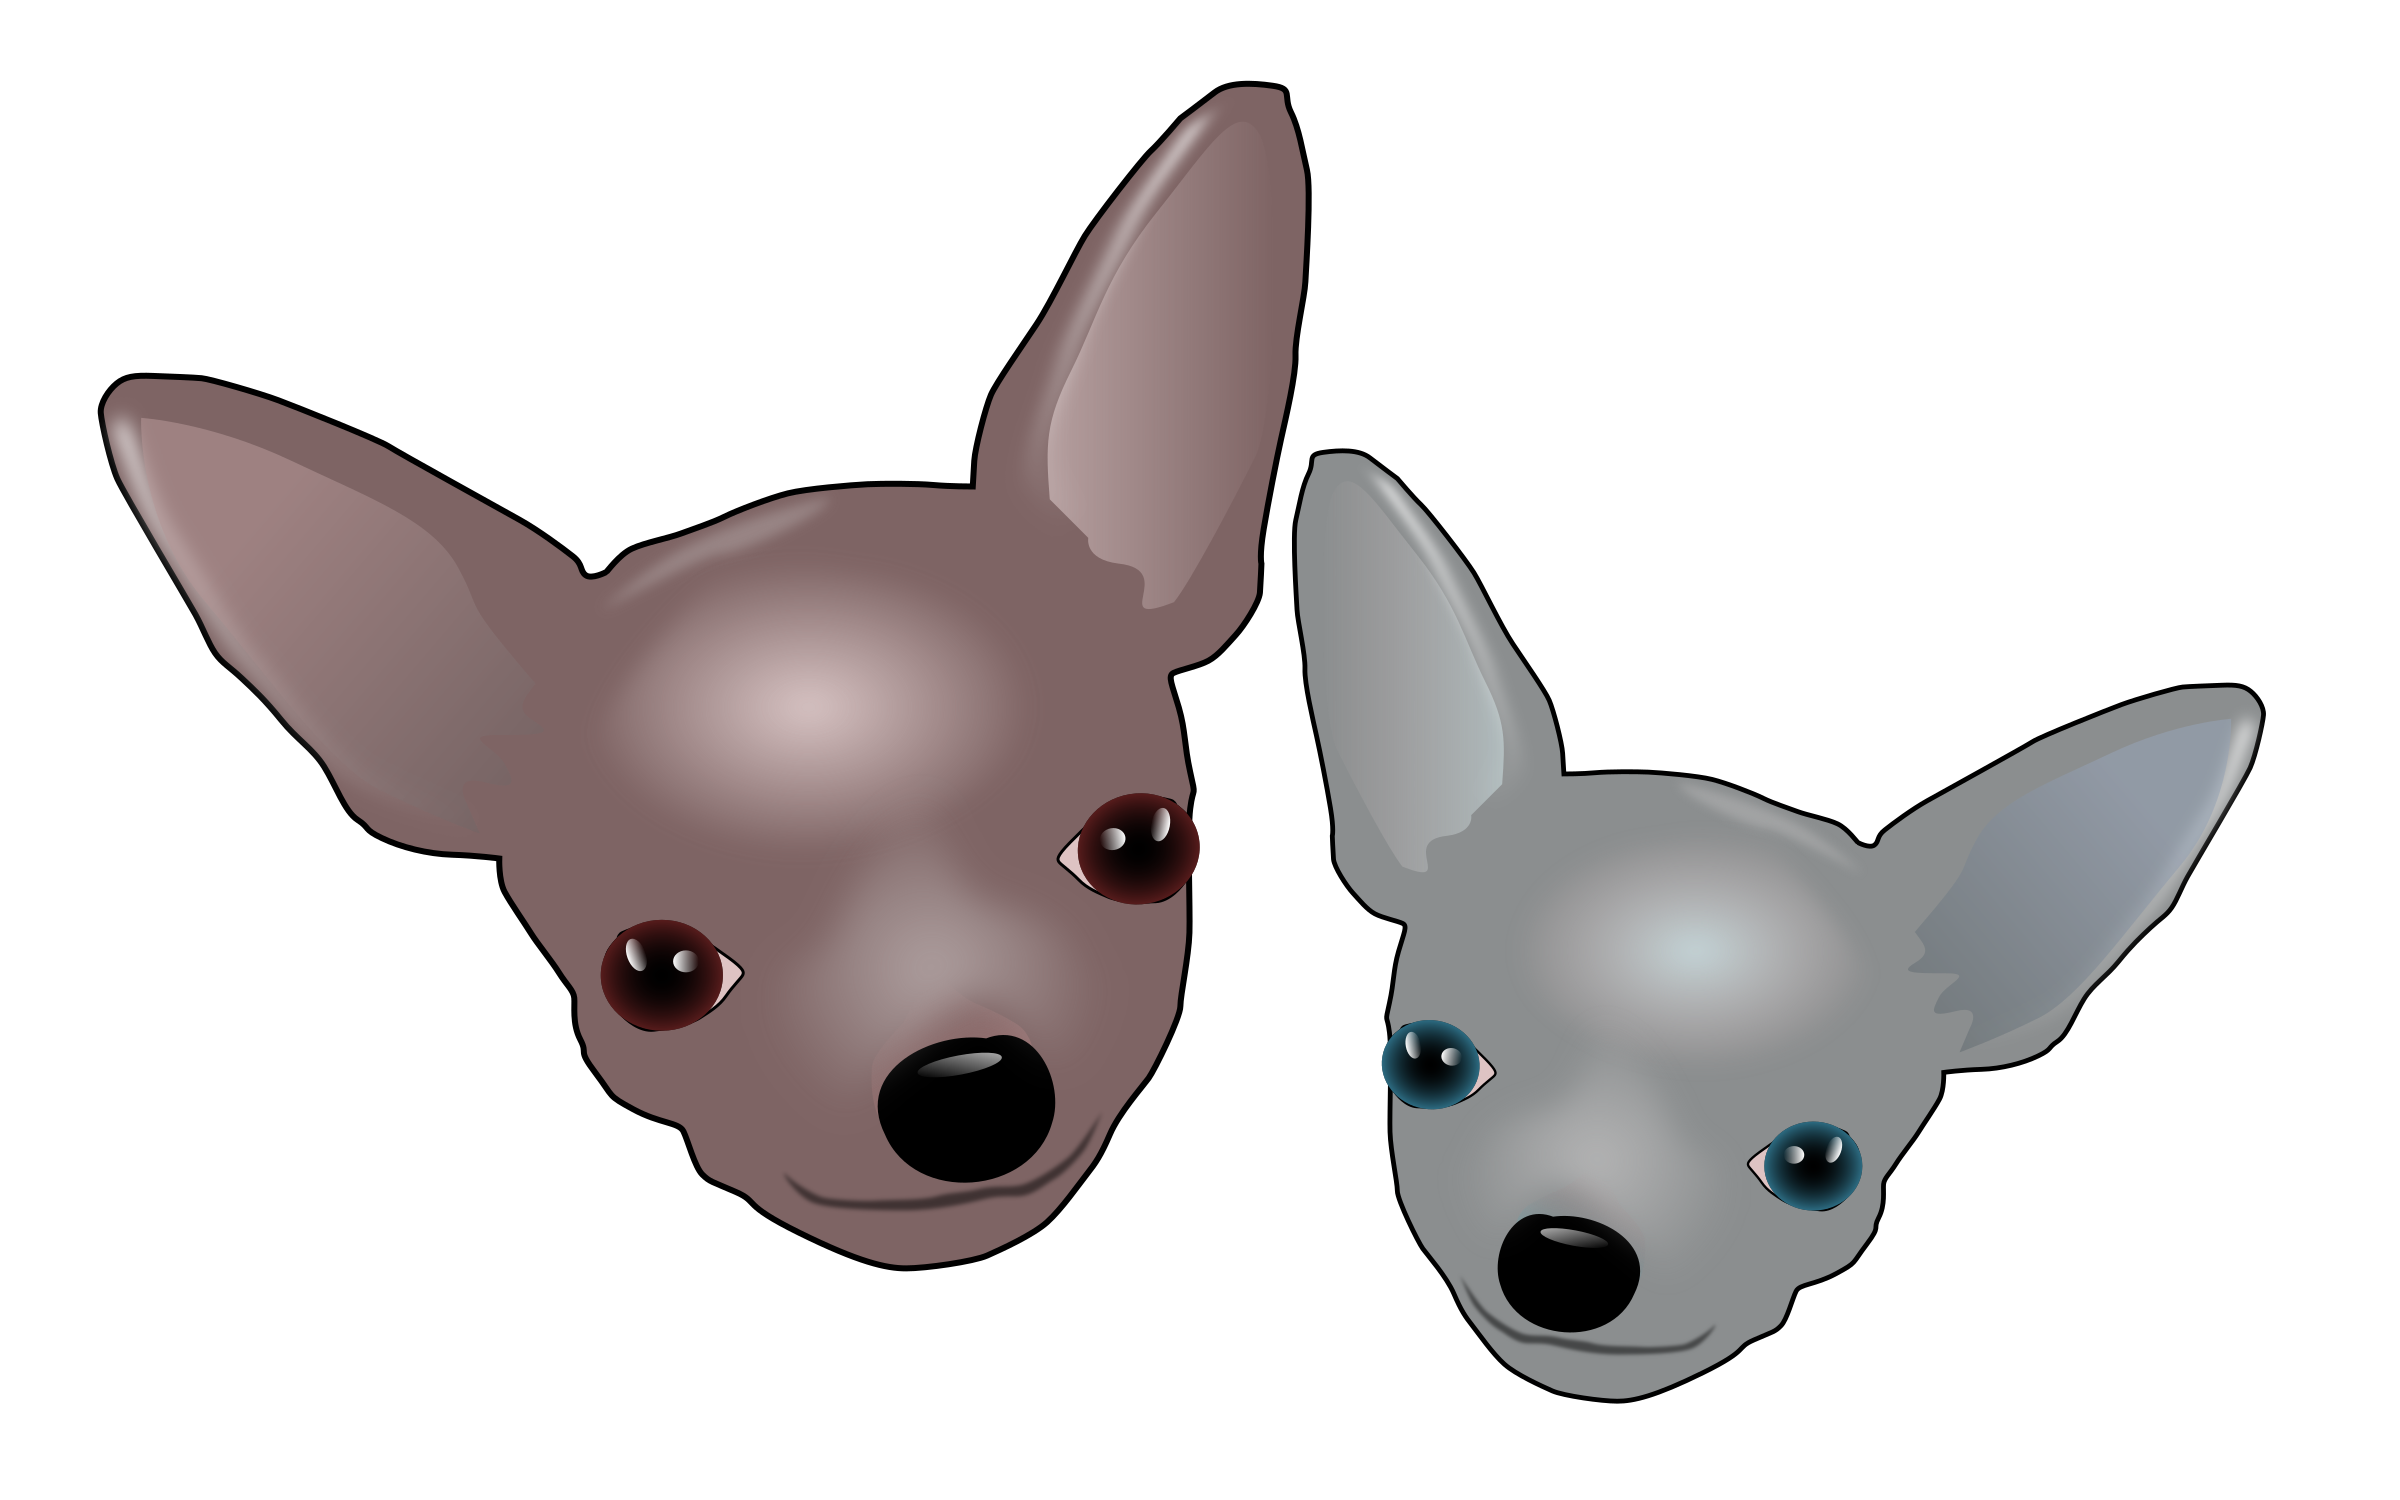 Two Chihuahuas by baroquon